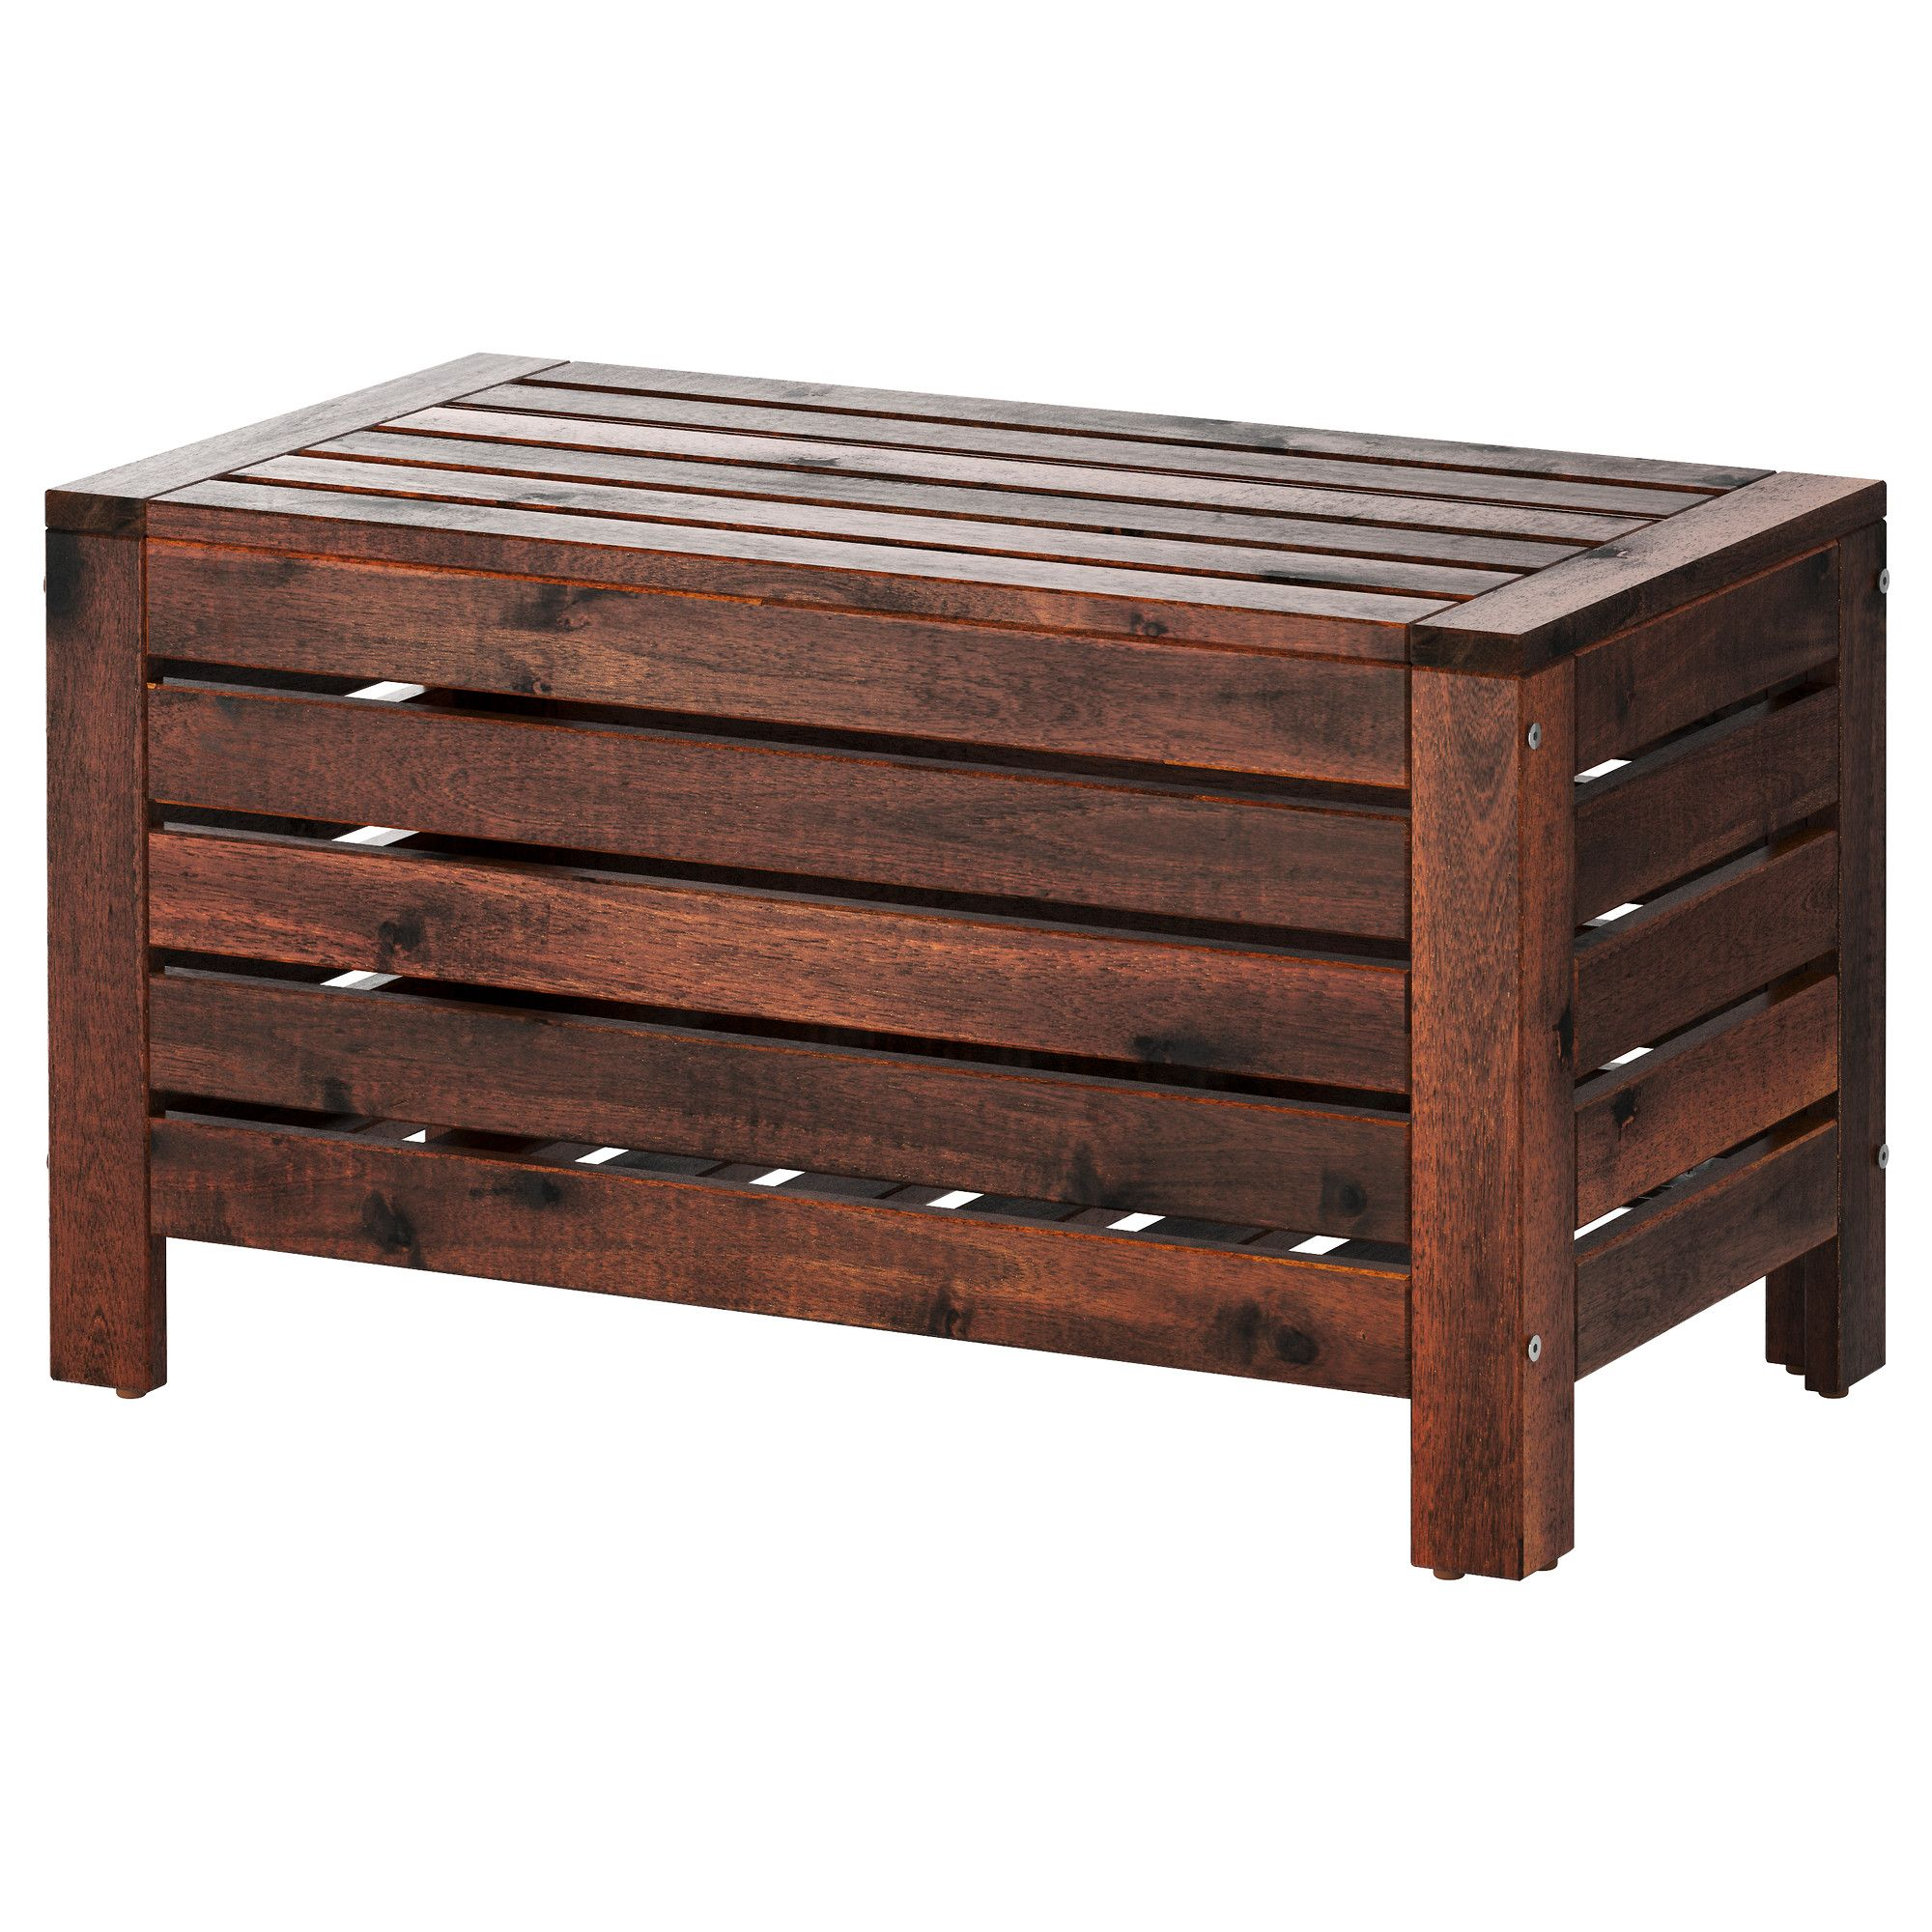 äpplarö Storage Bench Outdoor Brown Stained Brown Our Home